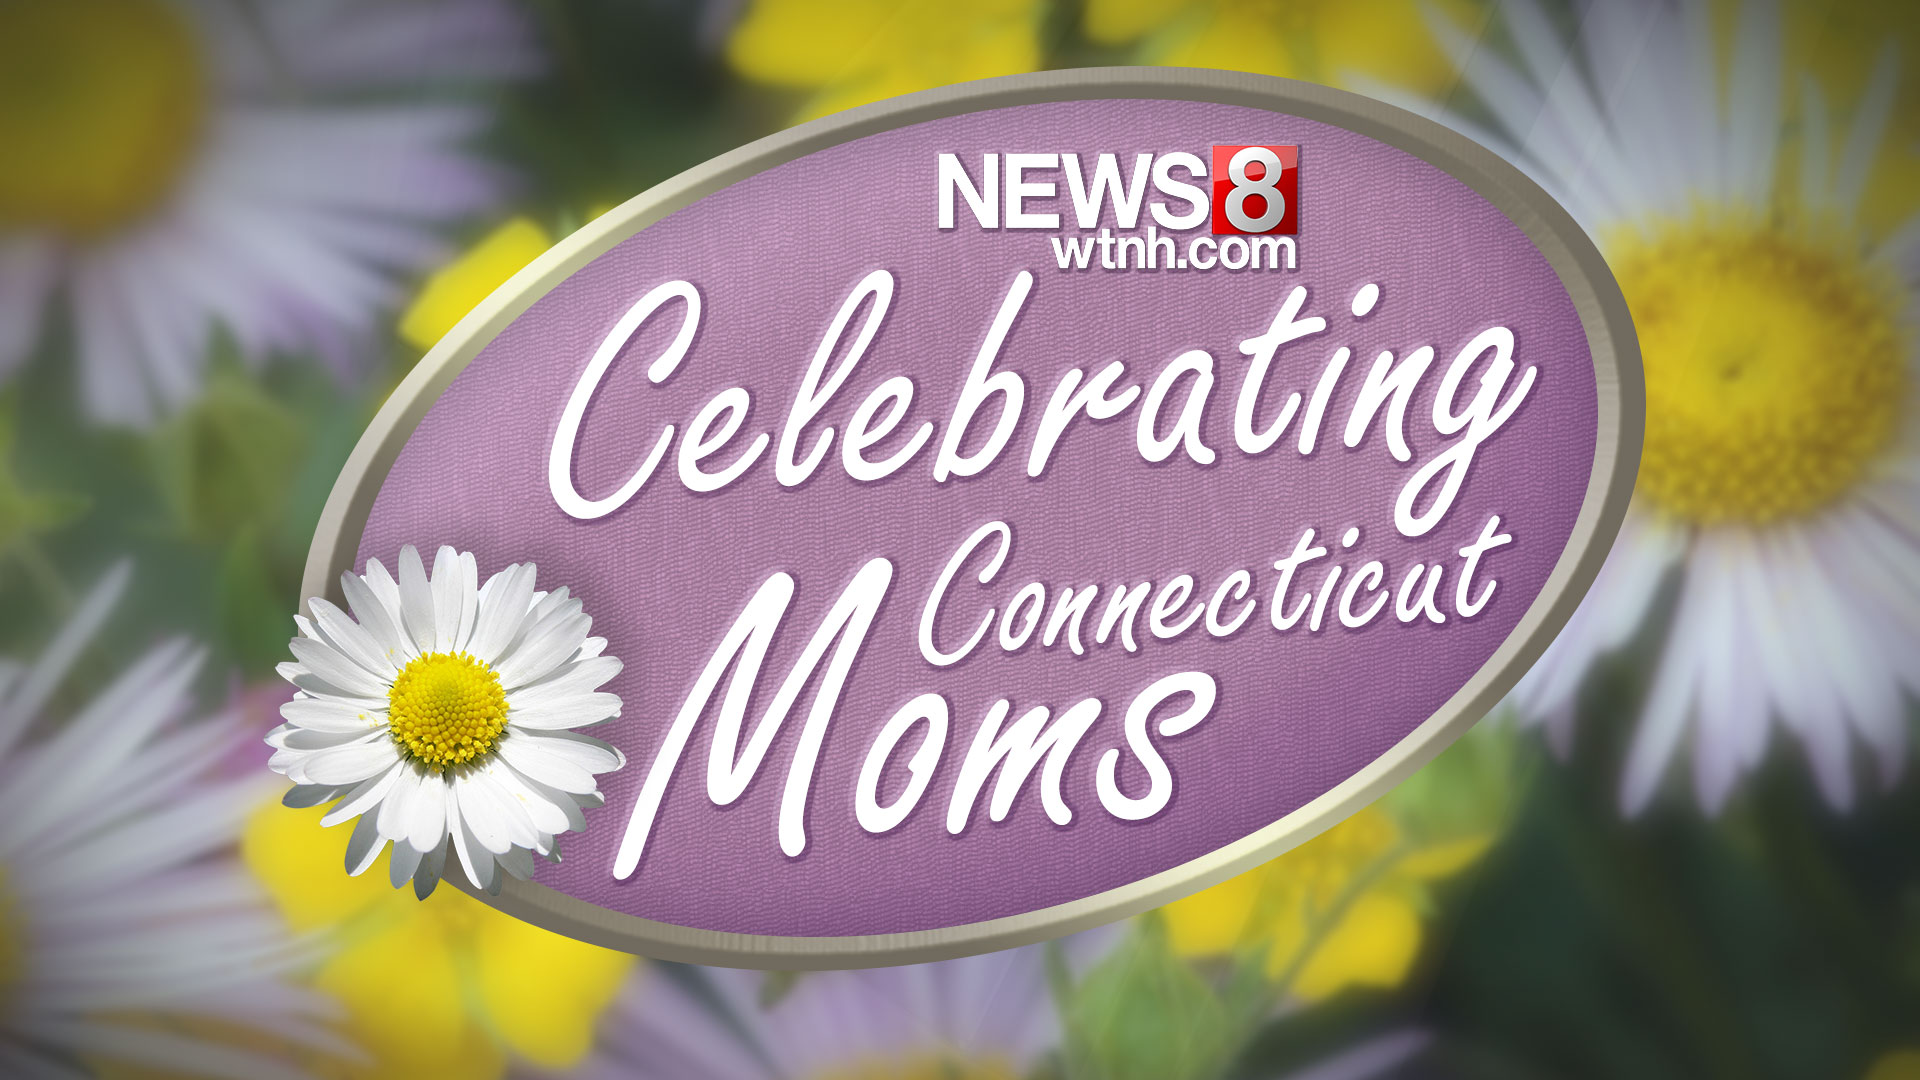 celebrating-ct-moms_1555704472111.jpg